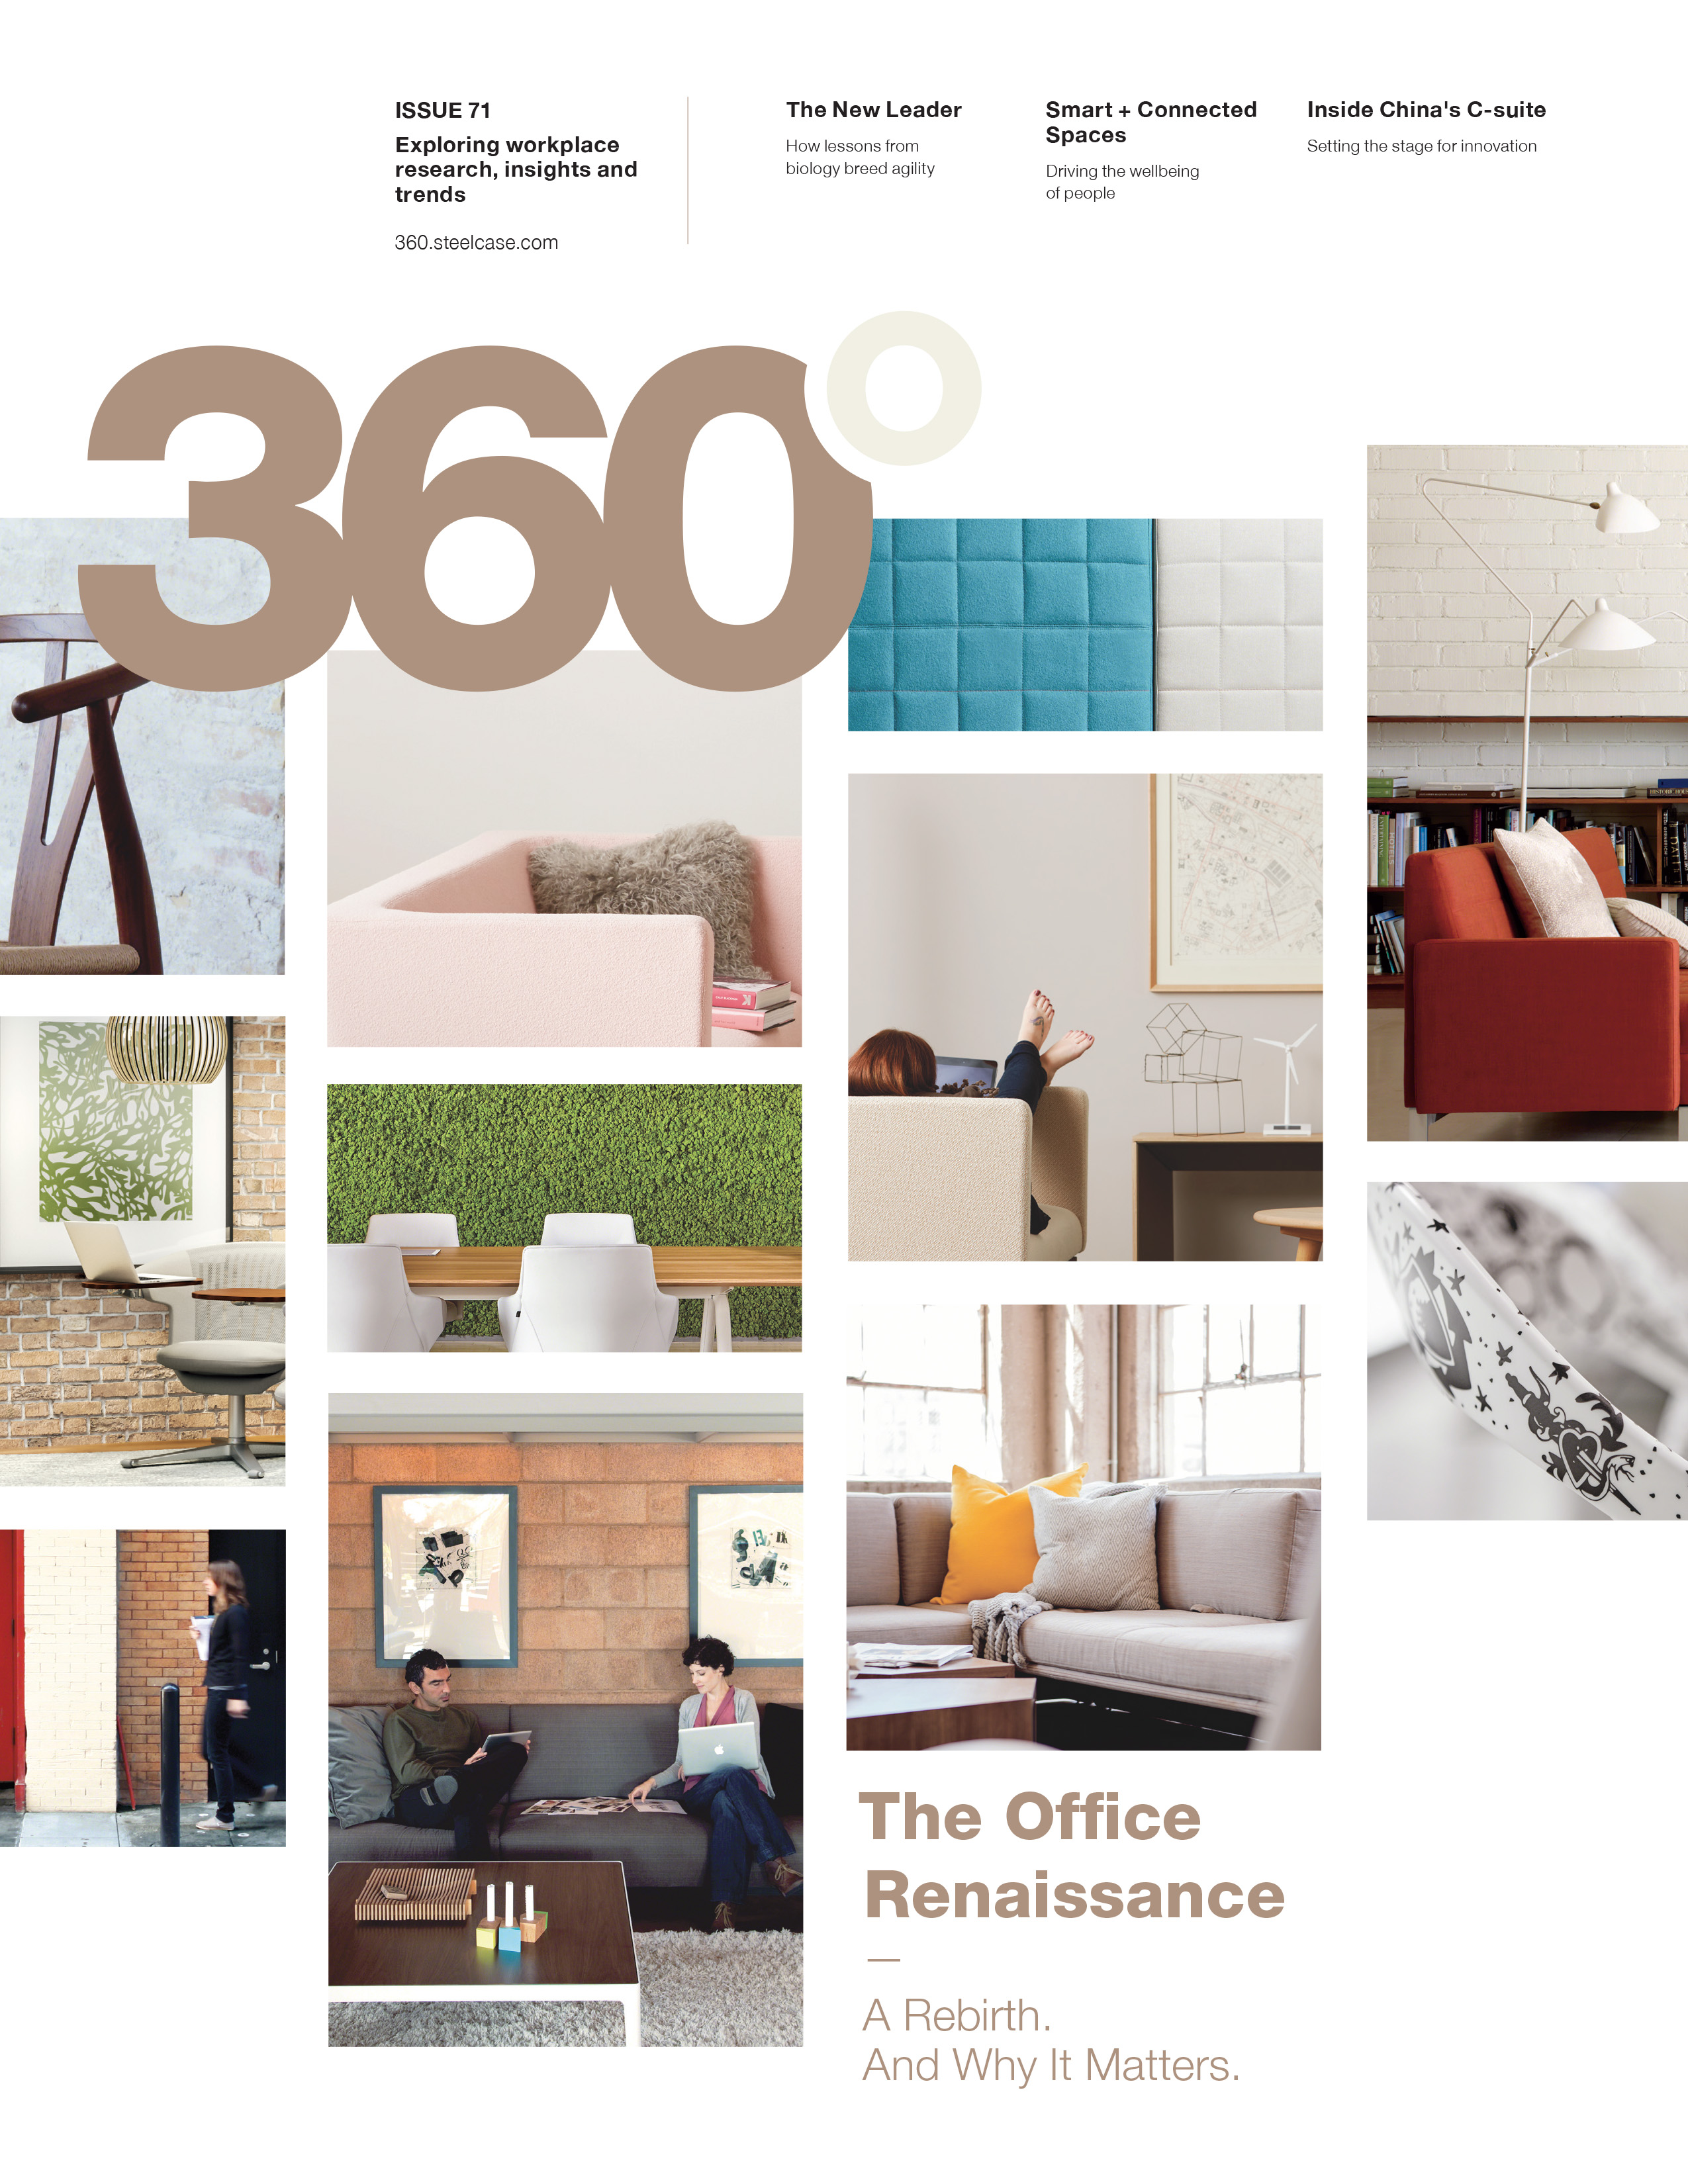 steelcase-360-office-renaissance